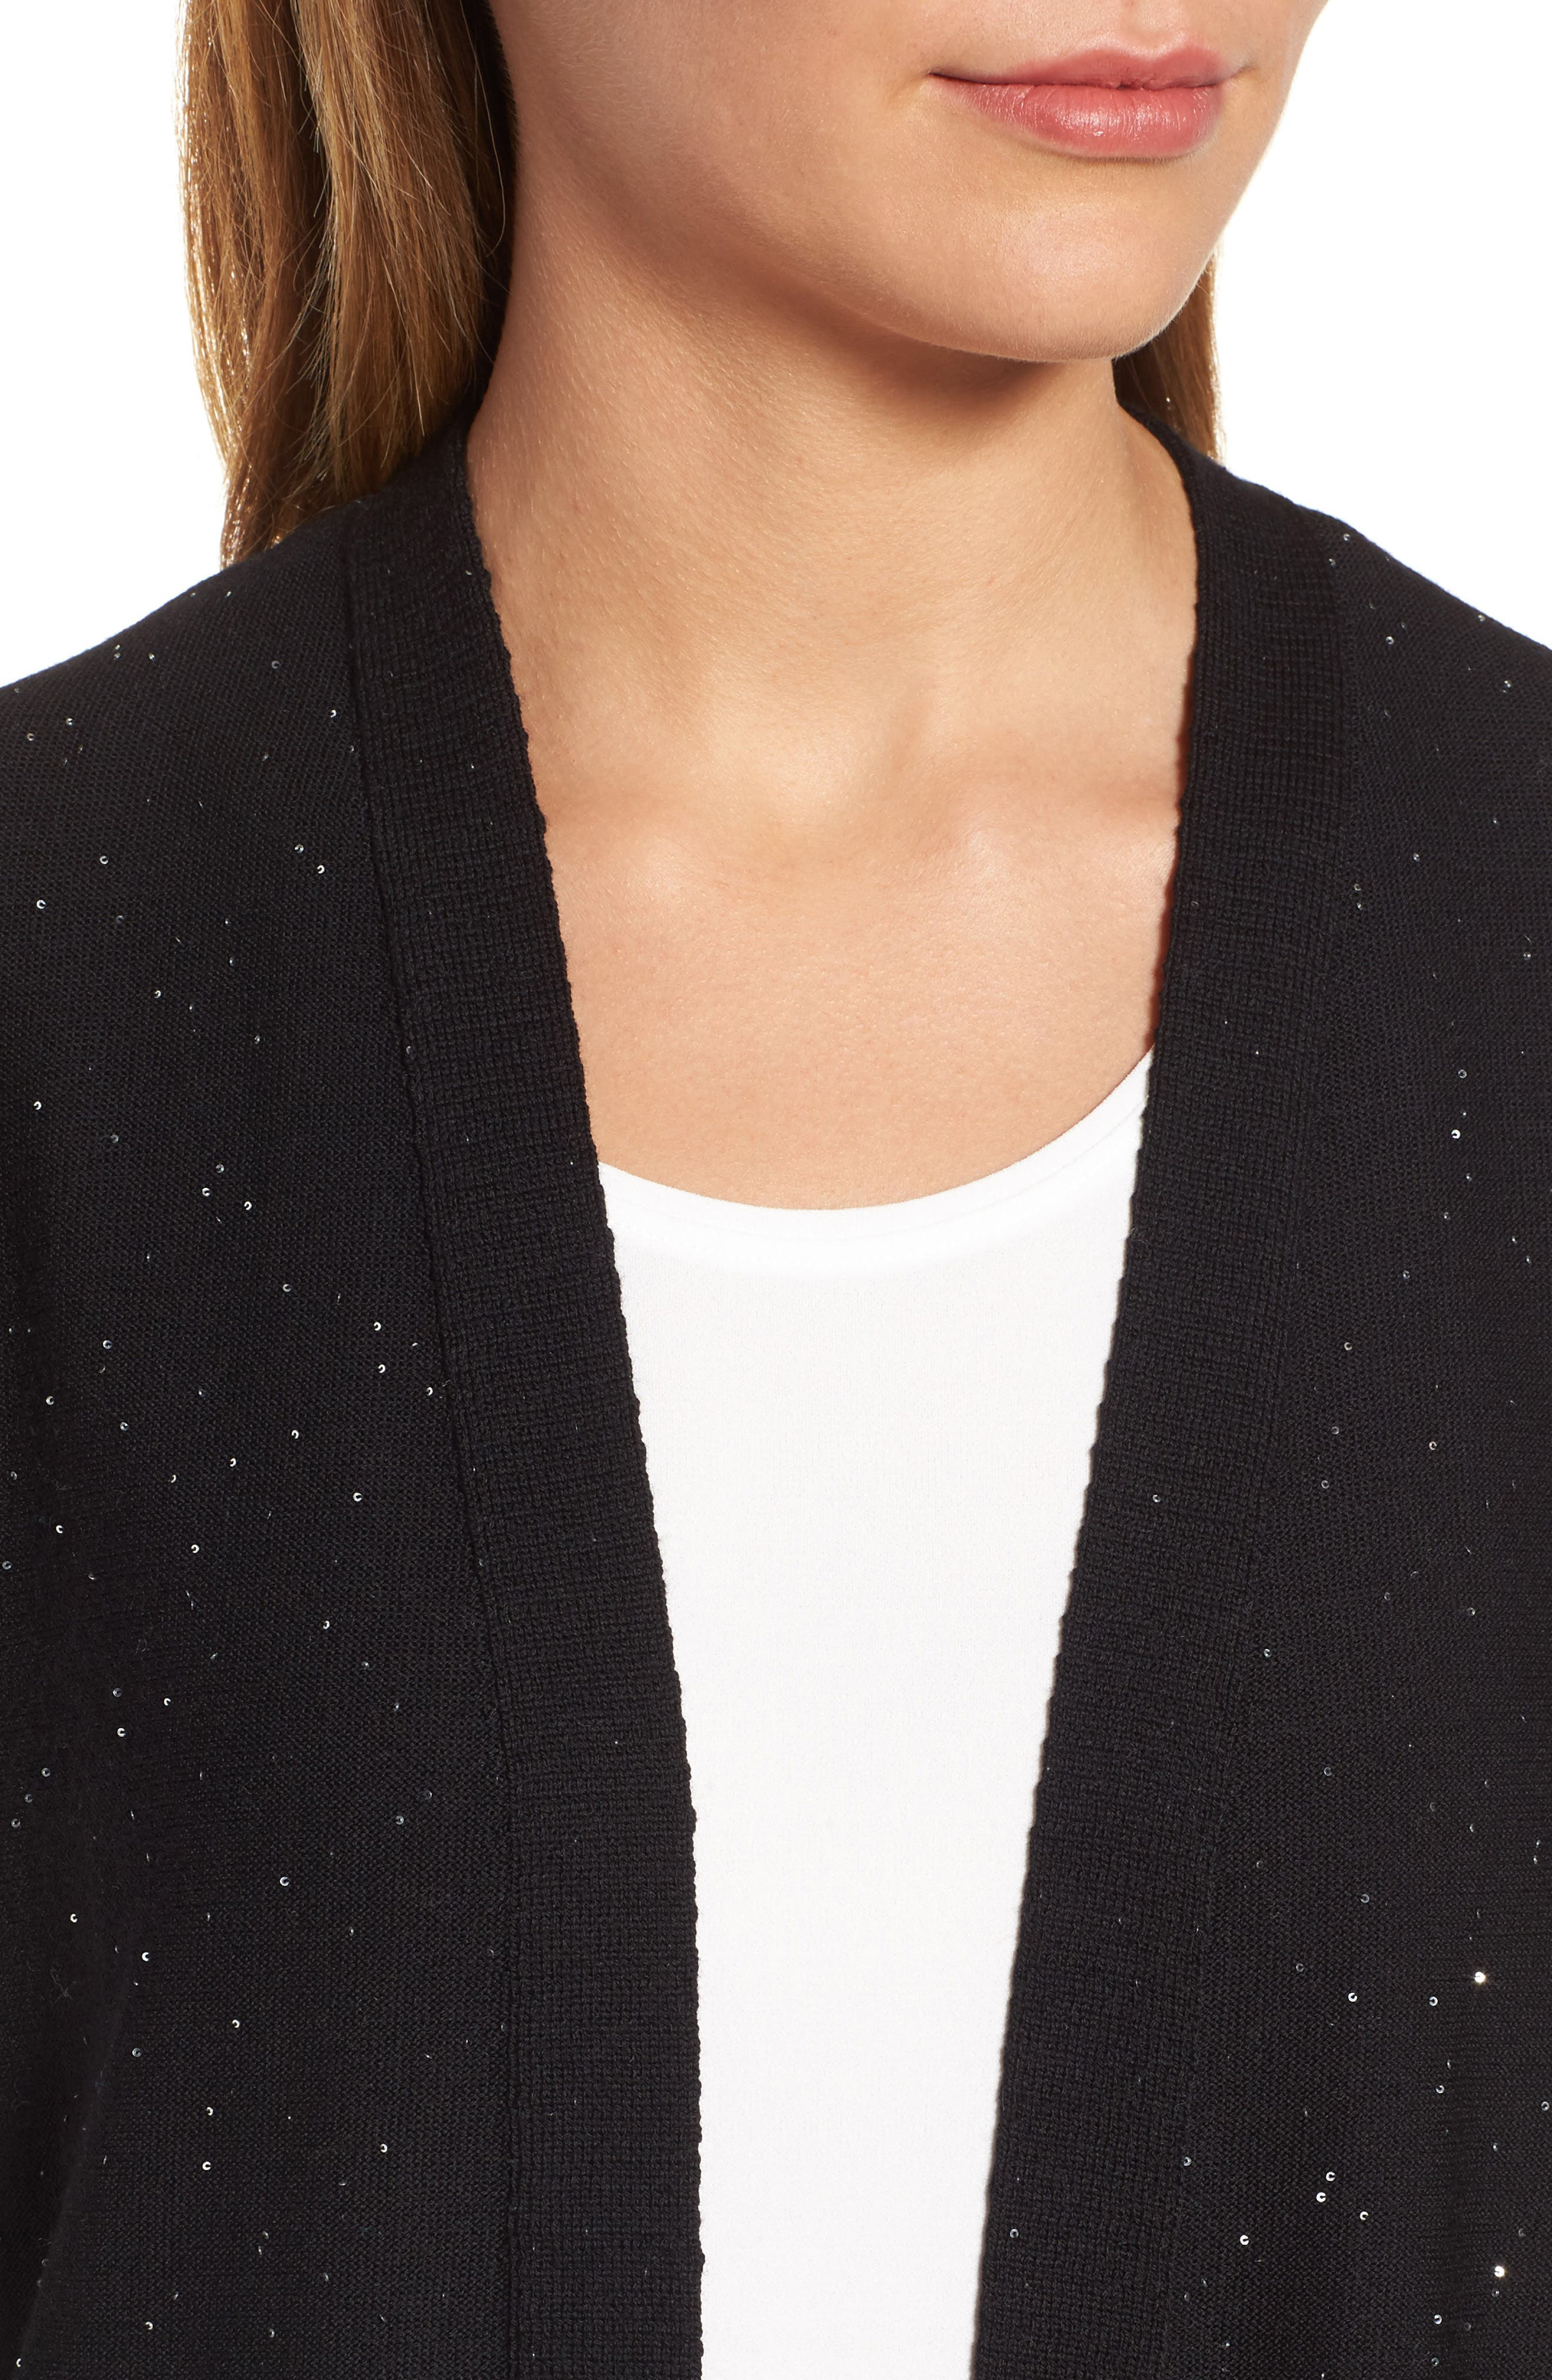 Sequin Merino Wool Cardigan,                             Alternate thumbnail 4, color,                             001